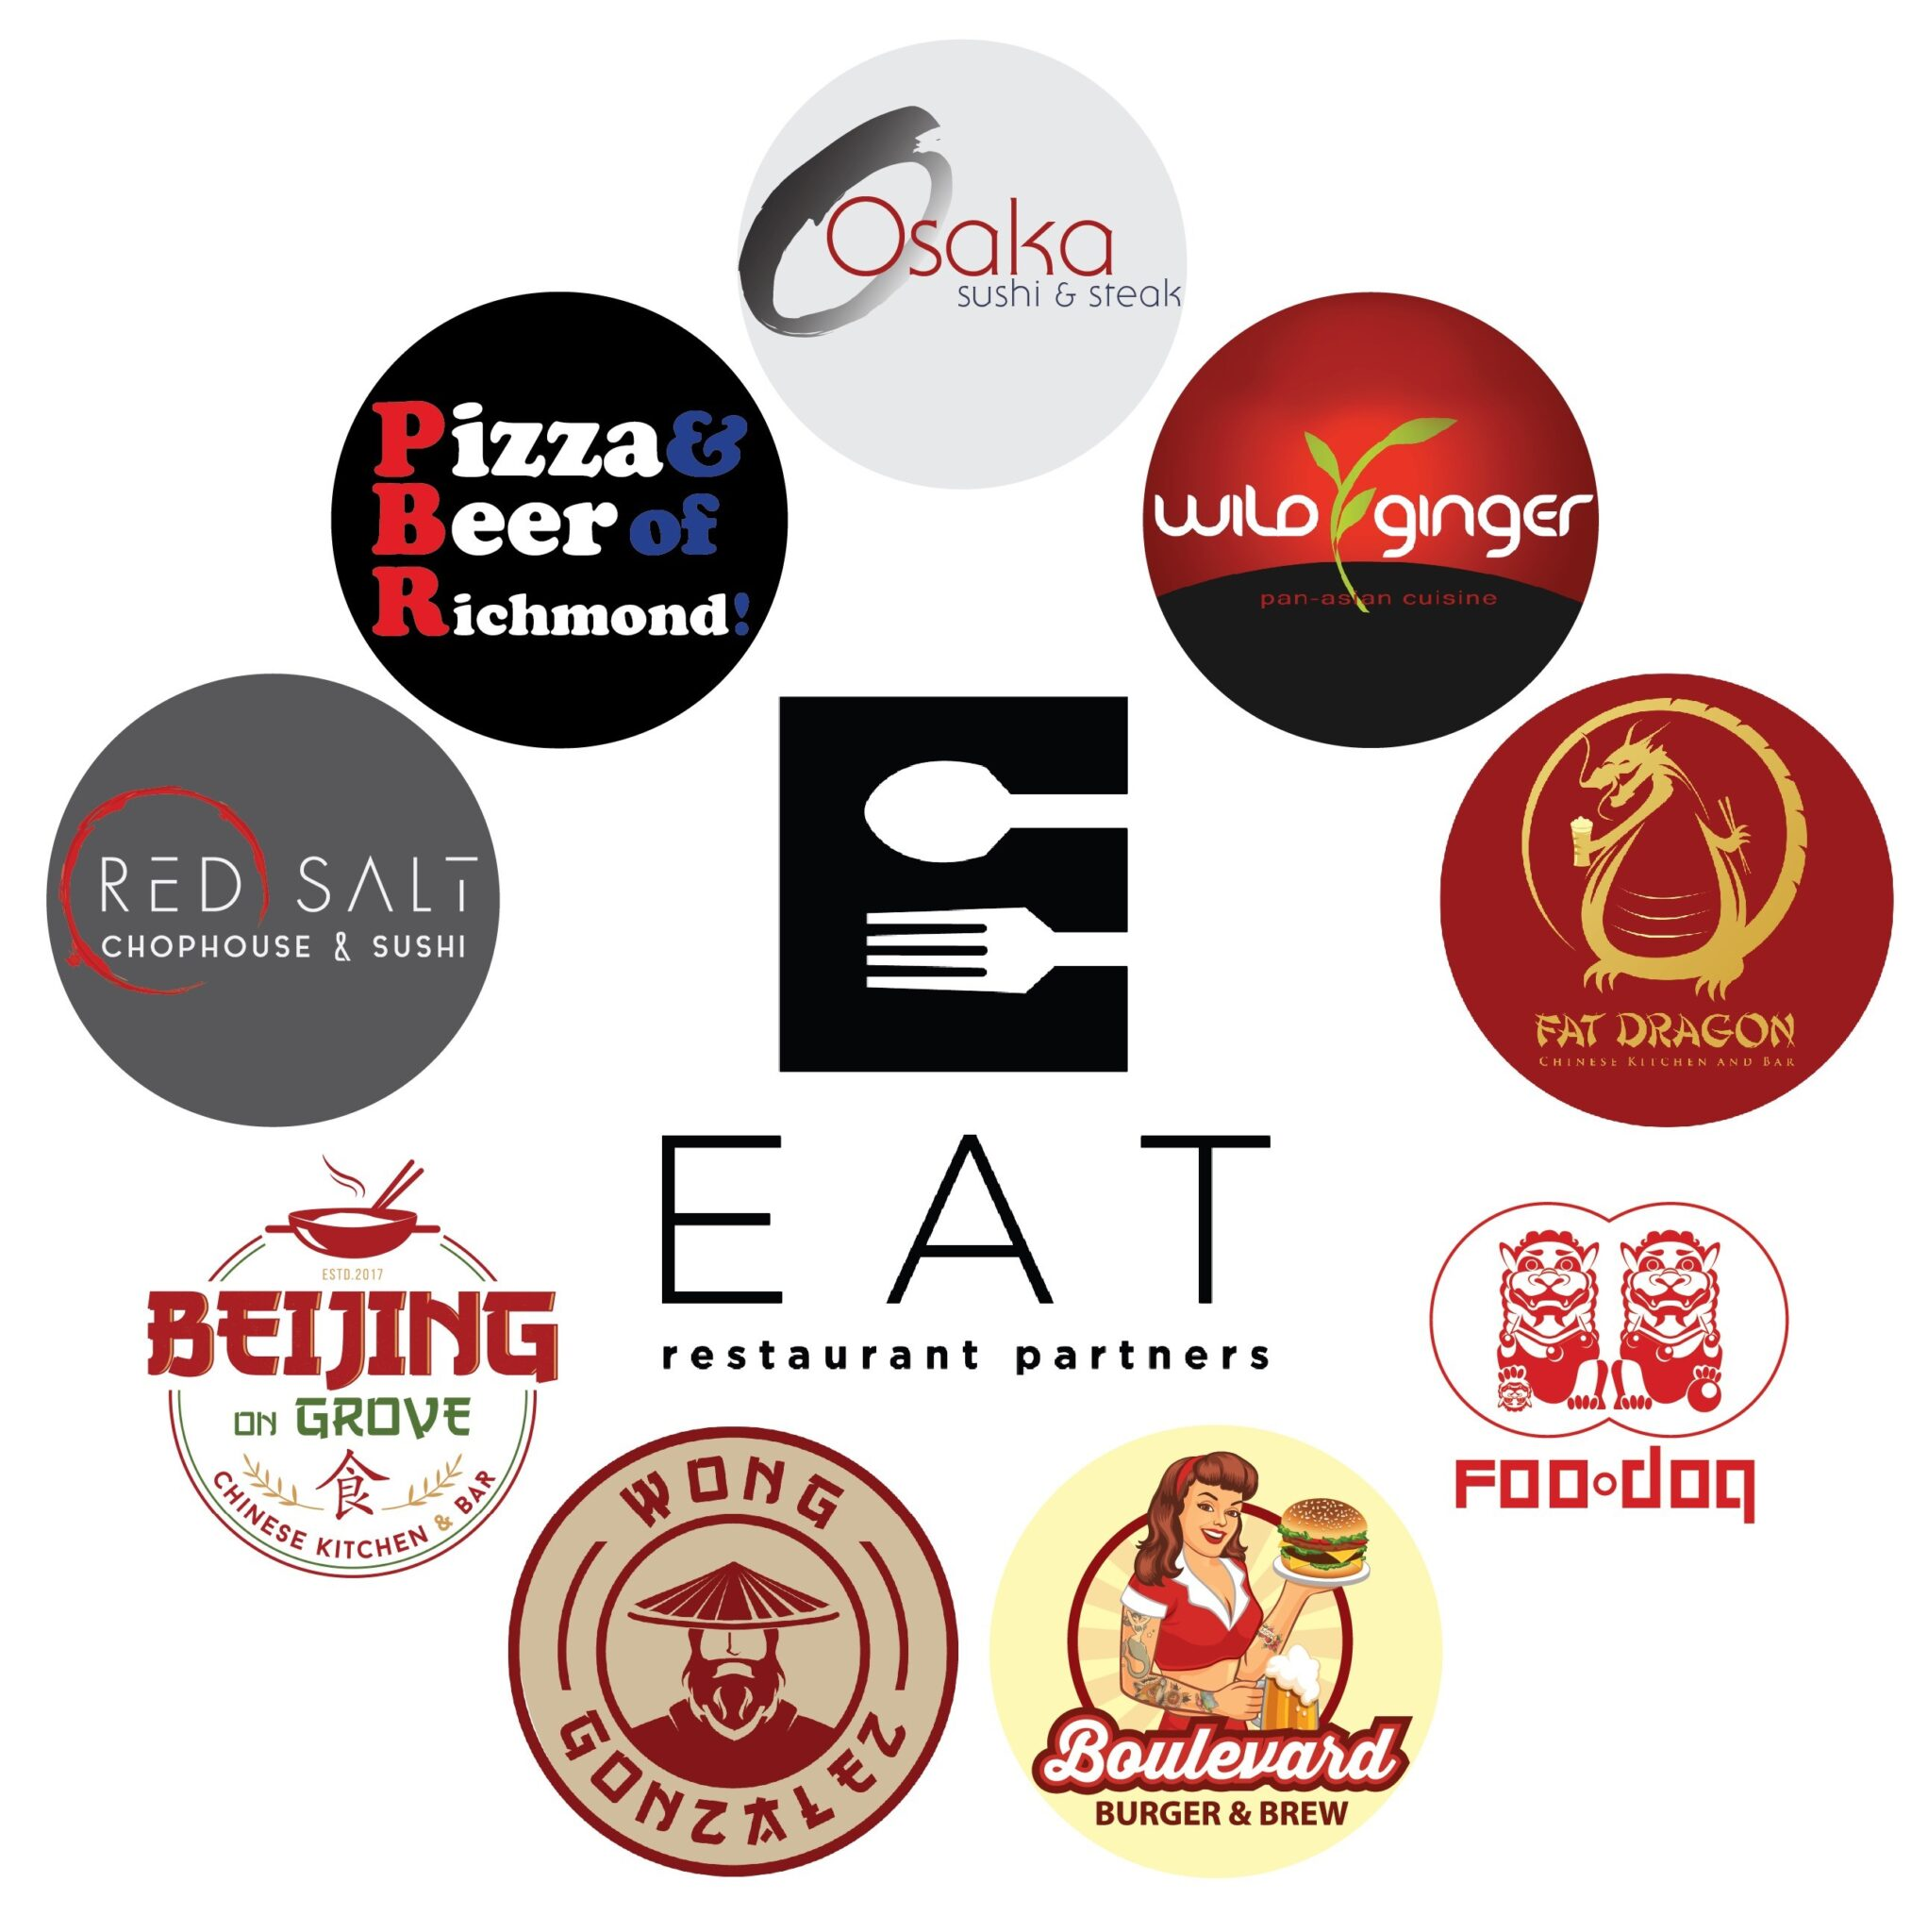 Eat Restaurant Partner logo